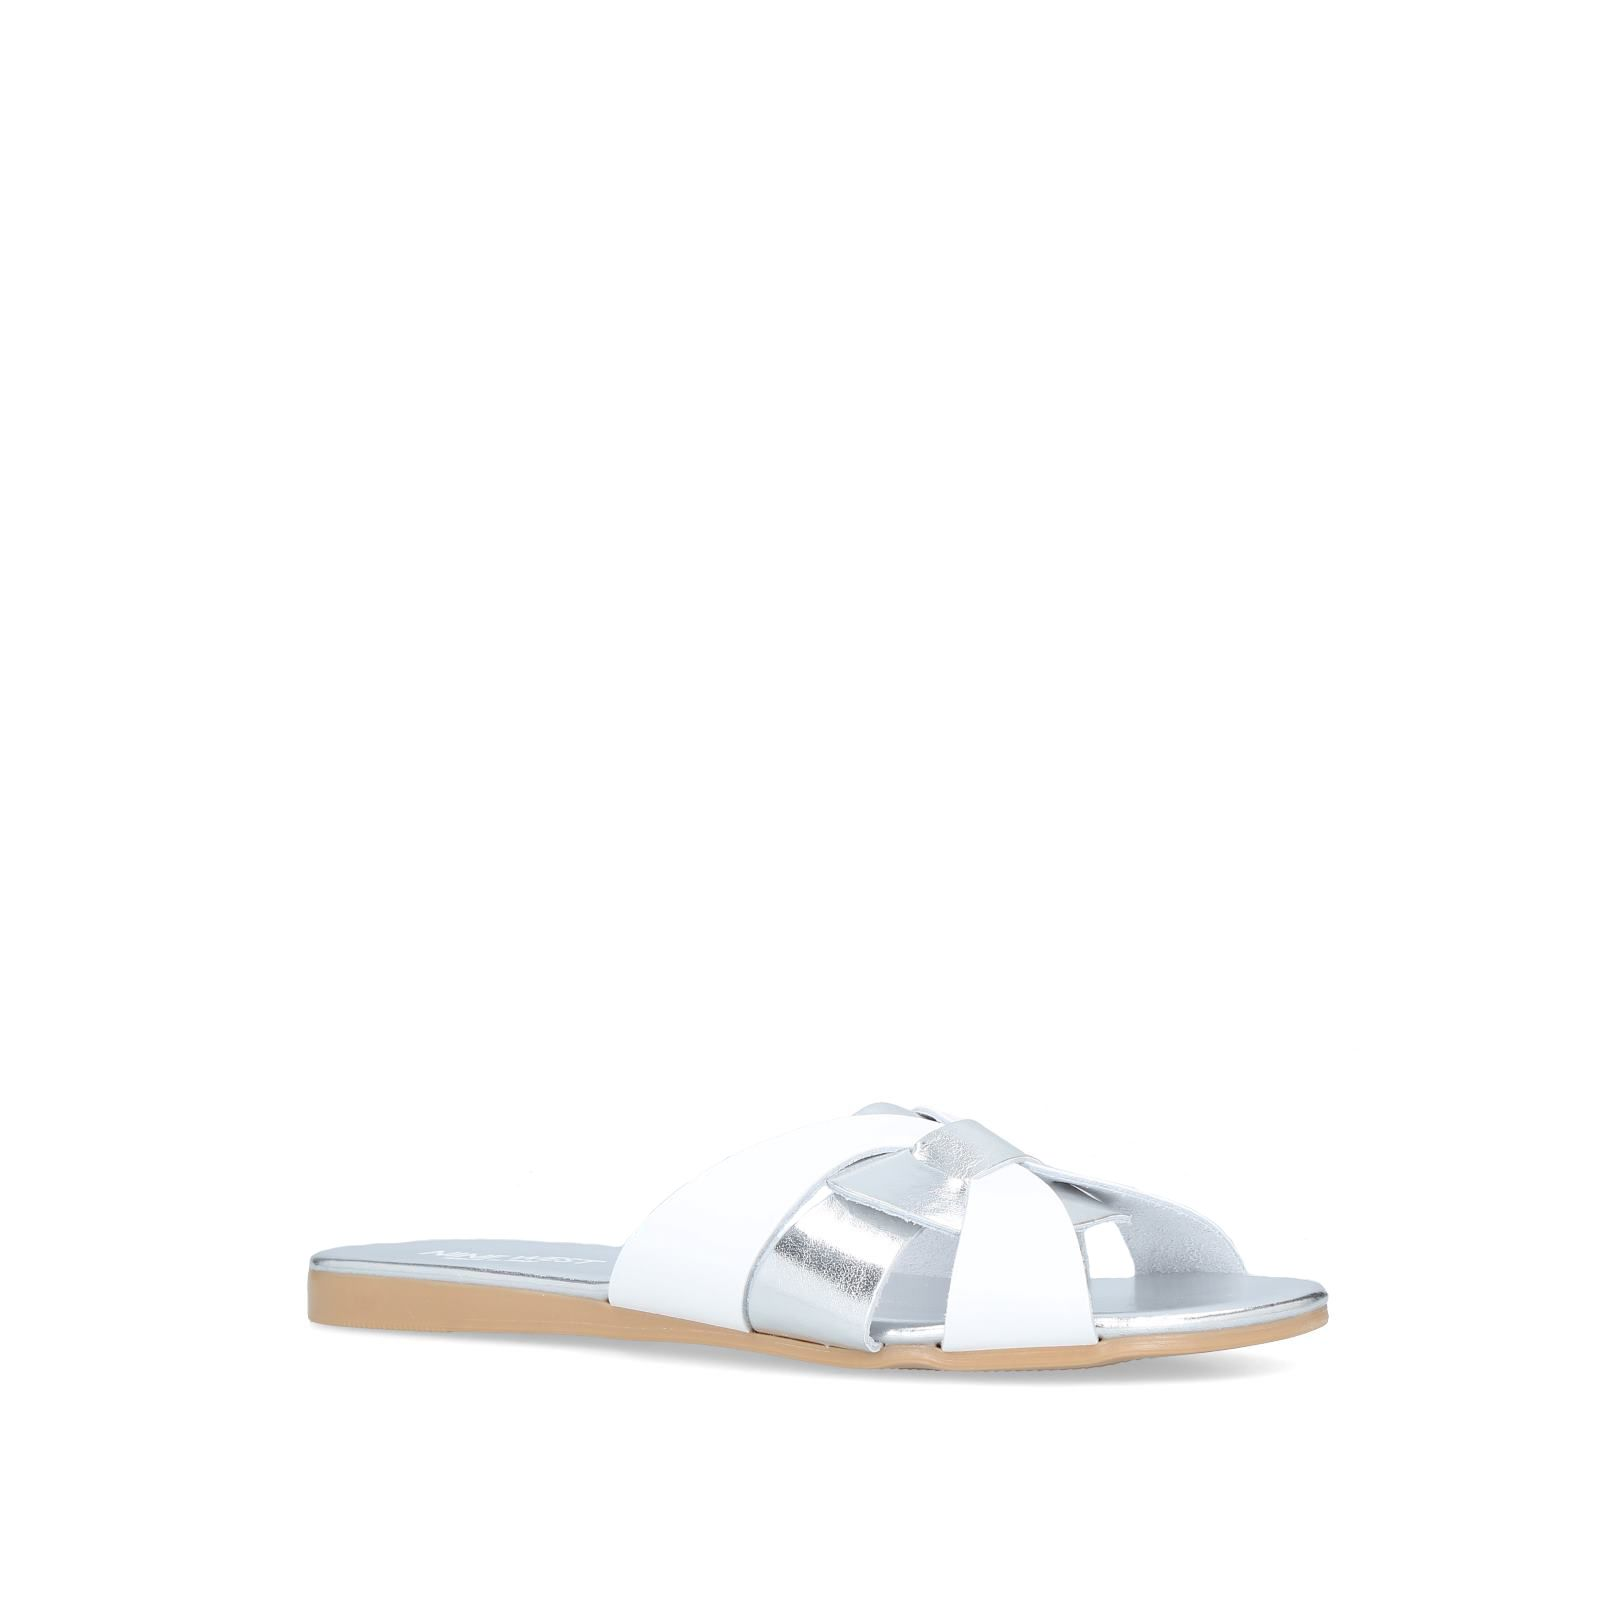 Nine West Candy Sandals, White